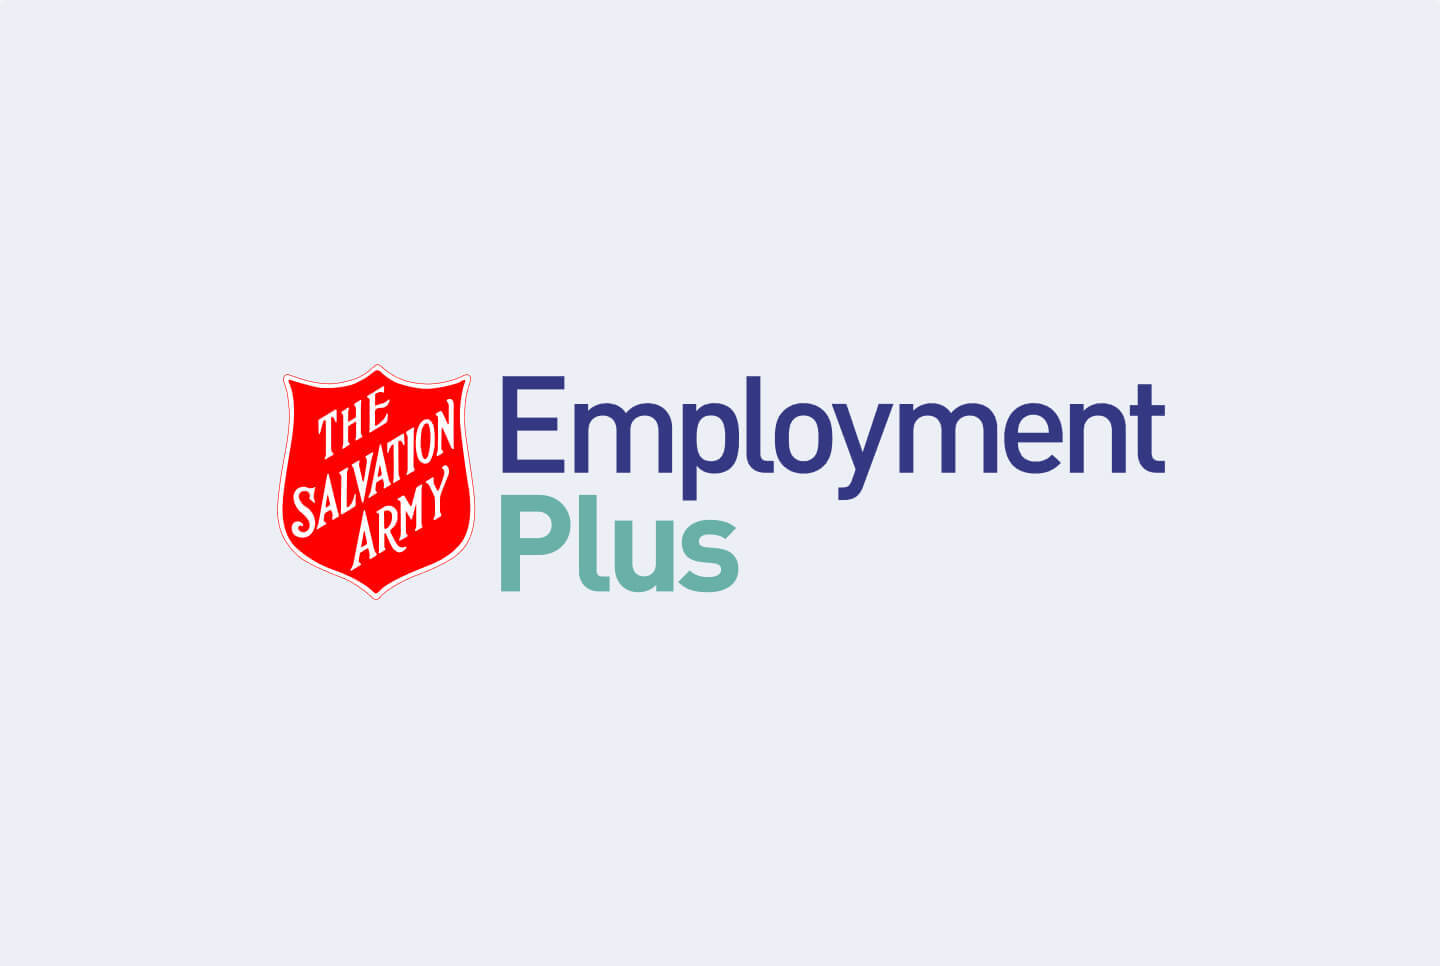 Employment Plus and ARA connect eager job seekers with retail employers